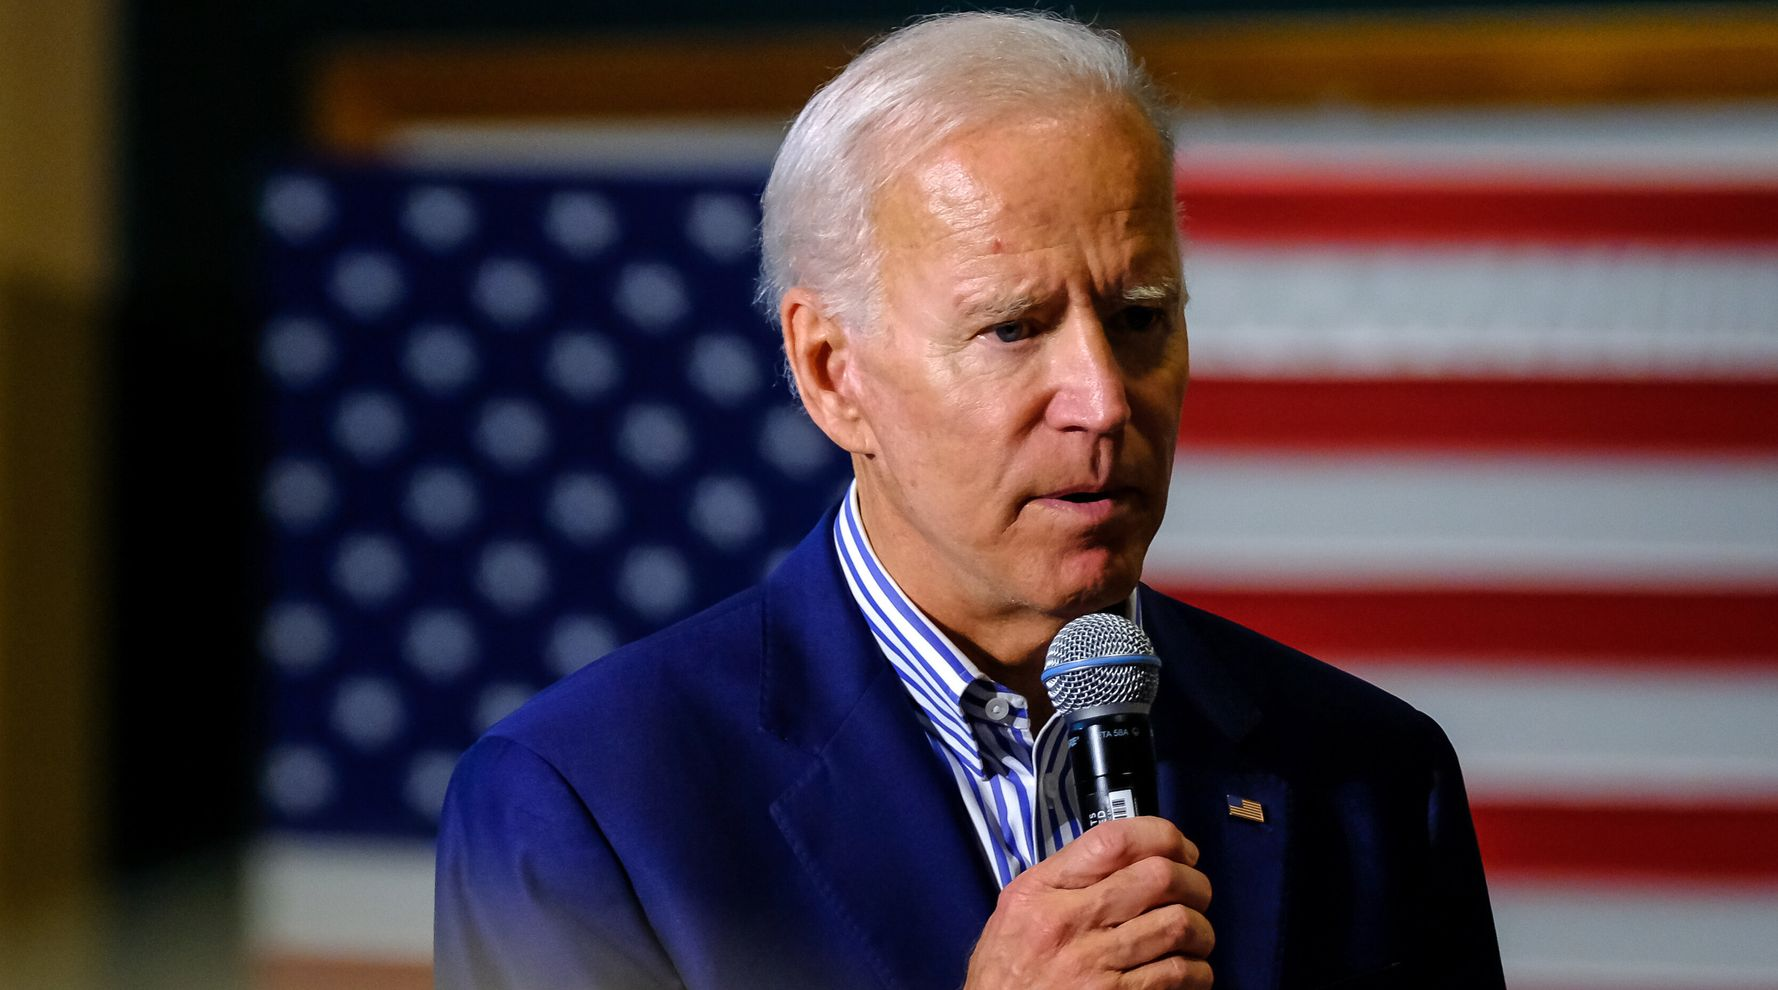 Biden Defends Attending Fundraiser Co-Hosted By A Founder Of Fossil Fuel Company